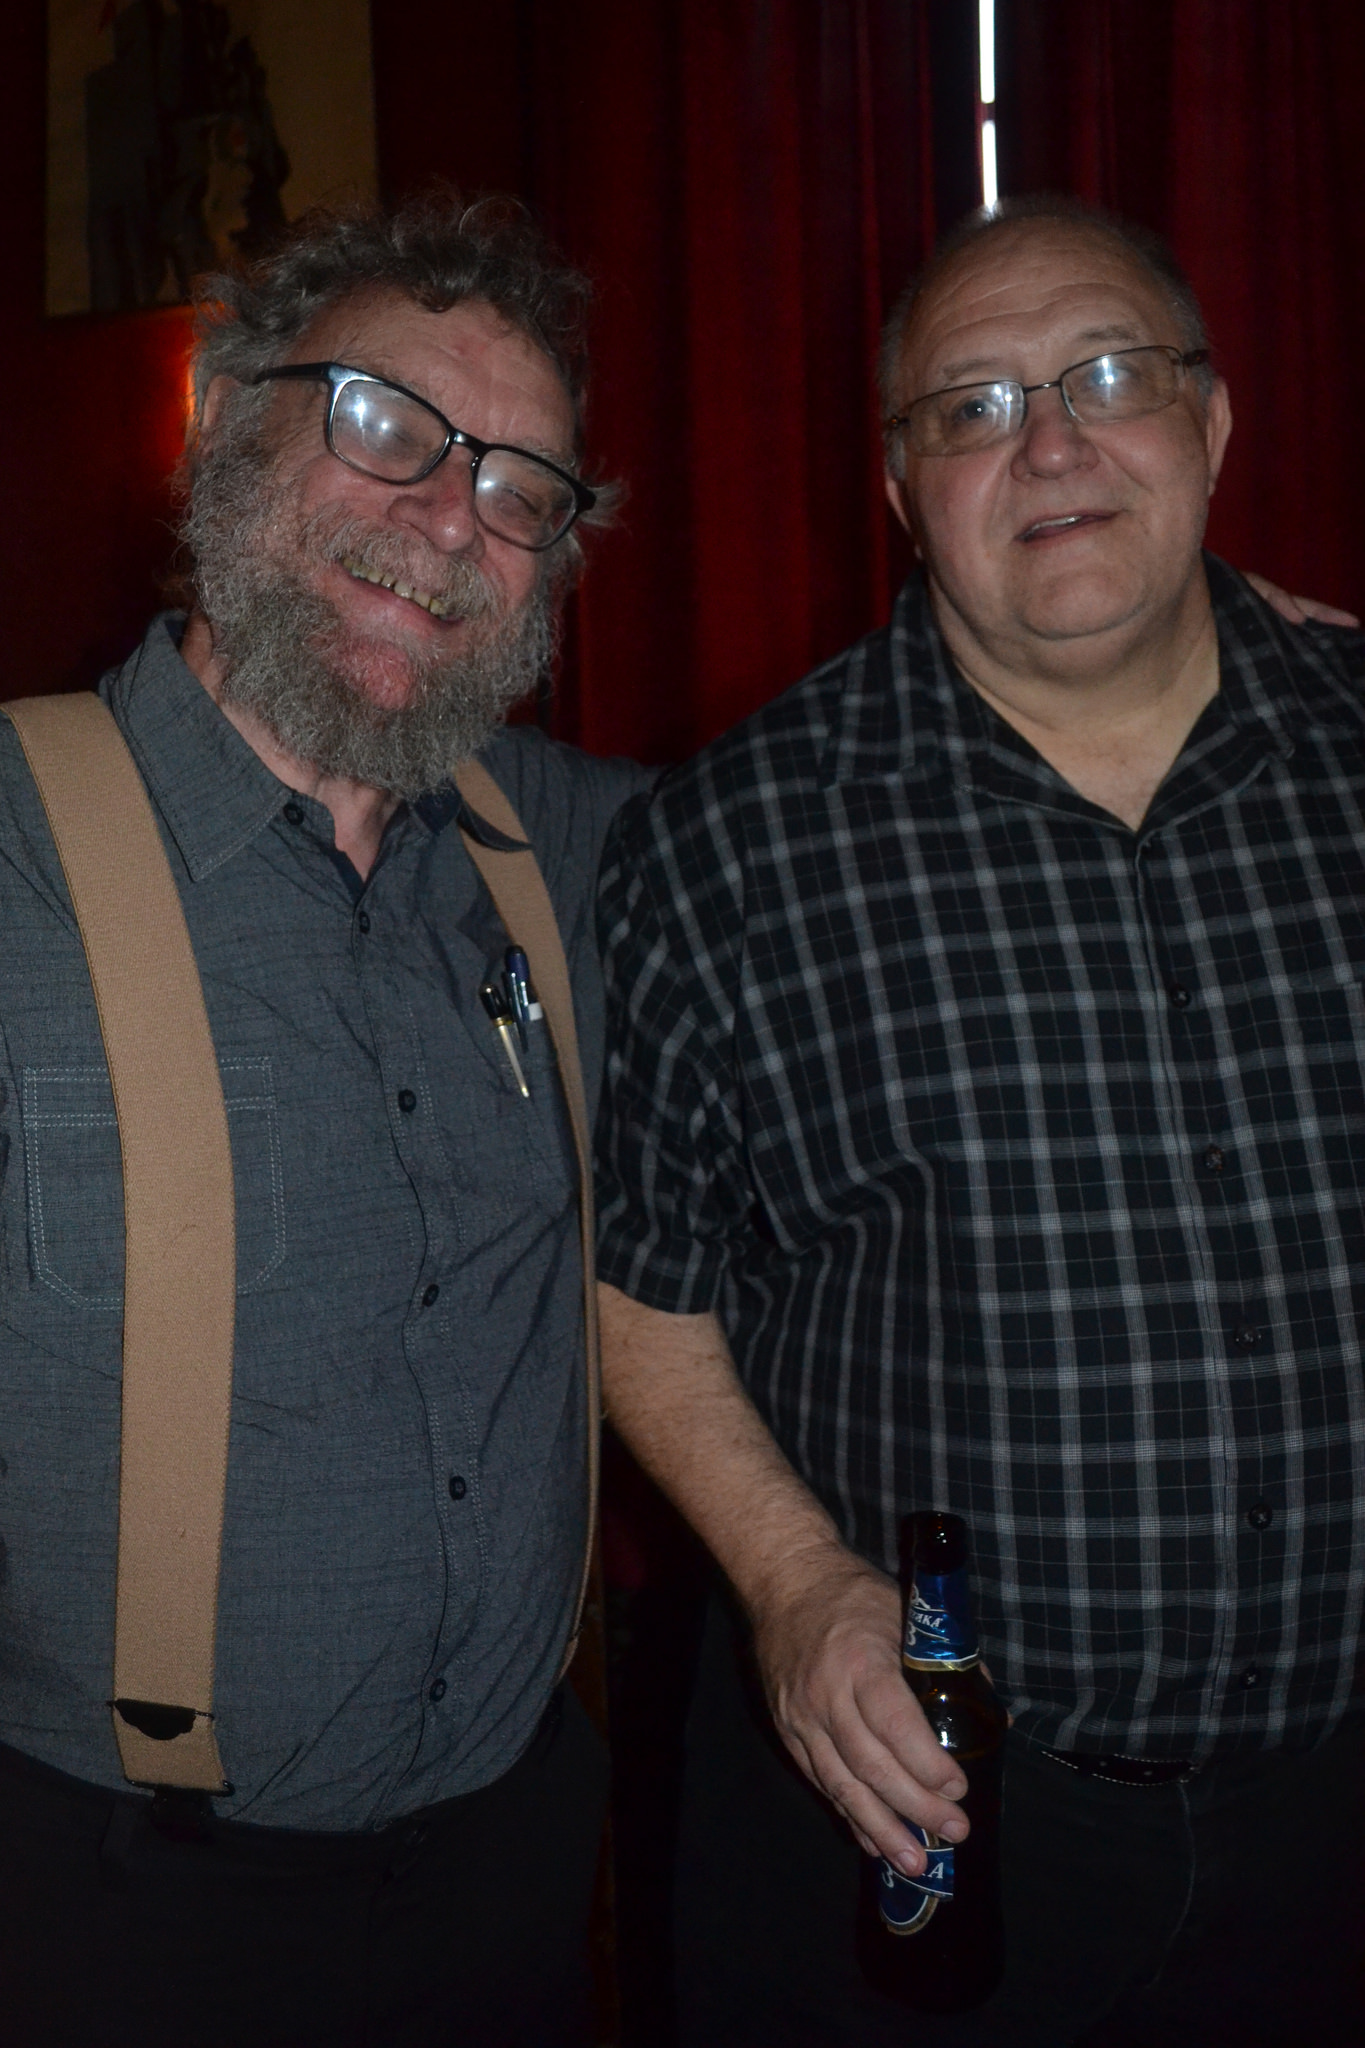 Photos from Aug 15th with Michael Swanwick & Jeffrey Ford